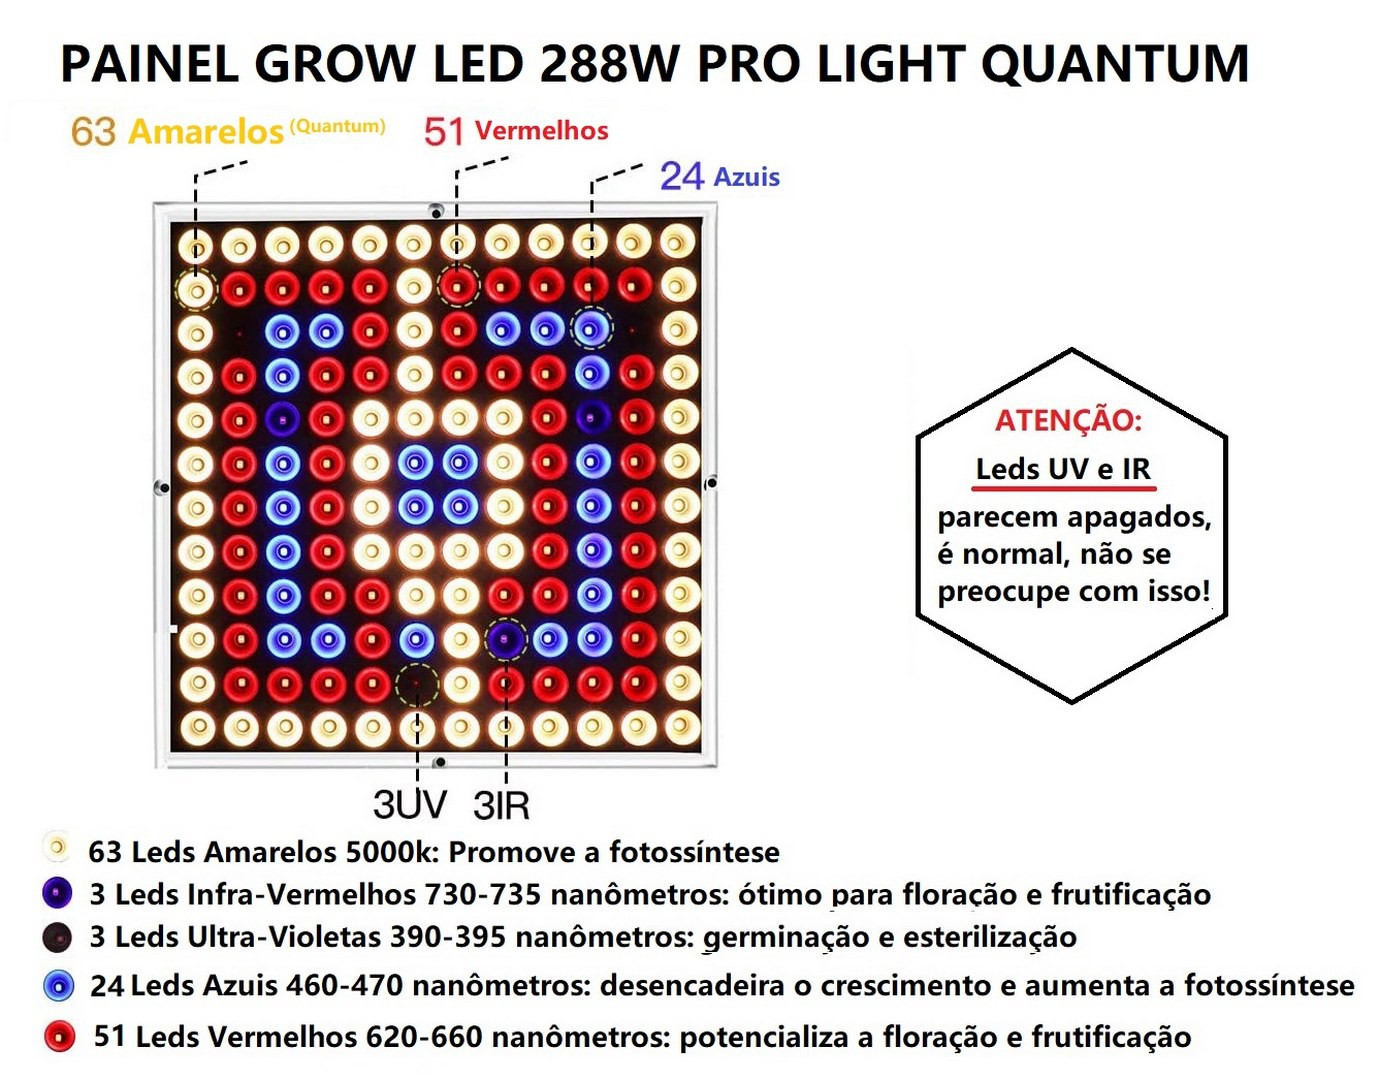 PAINEL GROW QUANTUM LED 288W (FULL SPECTRUM)